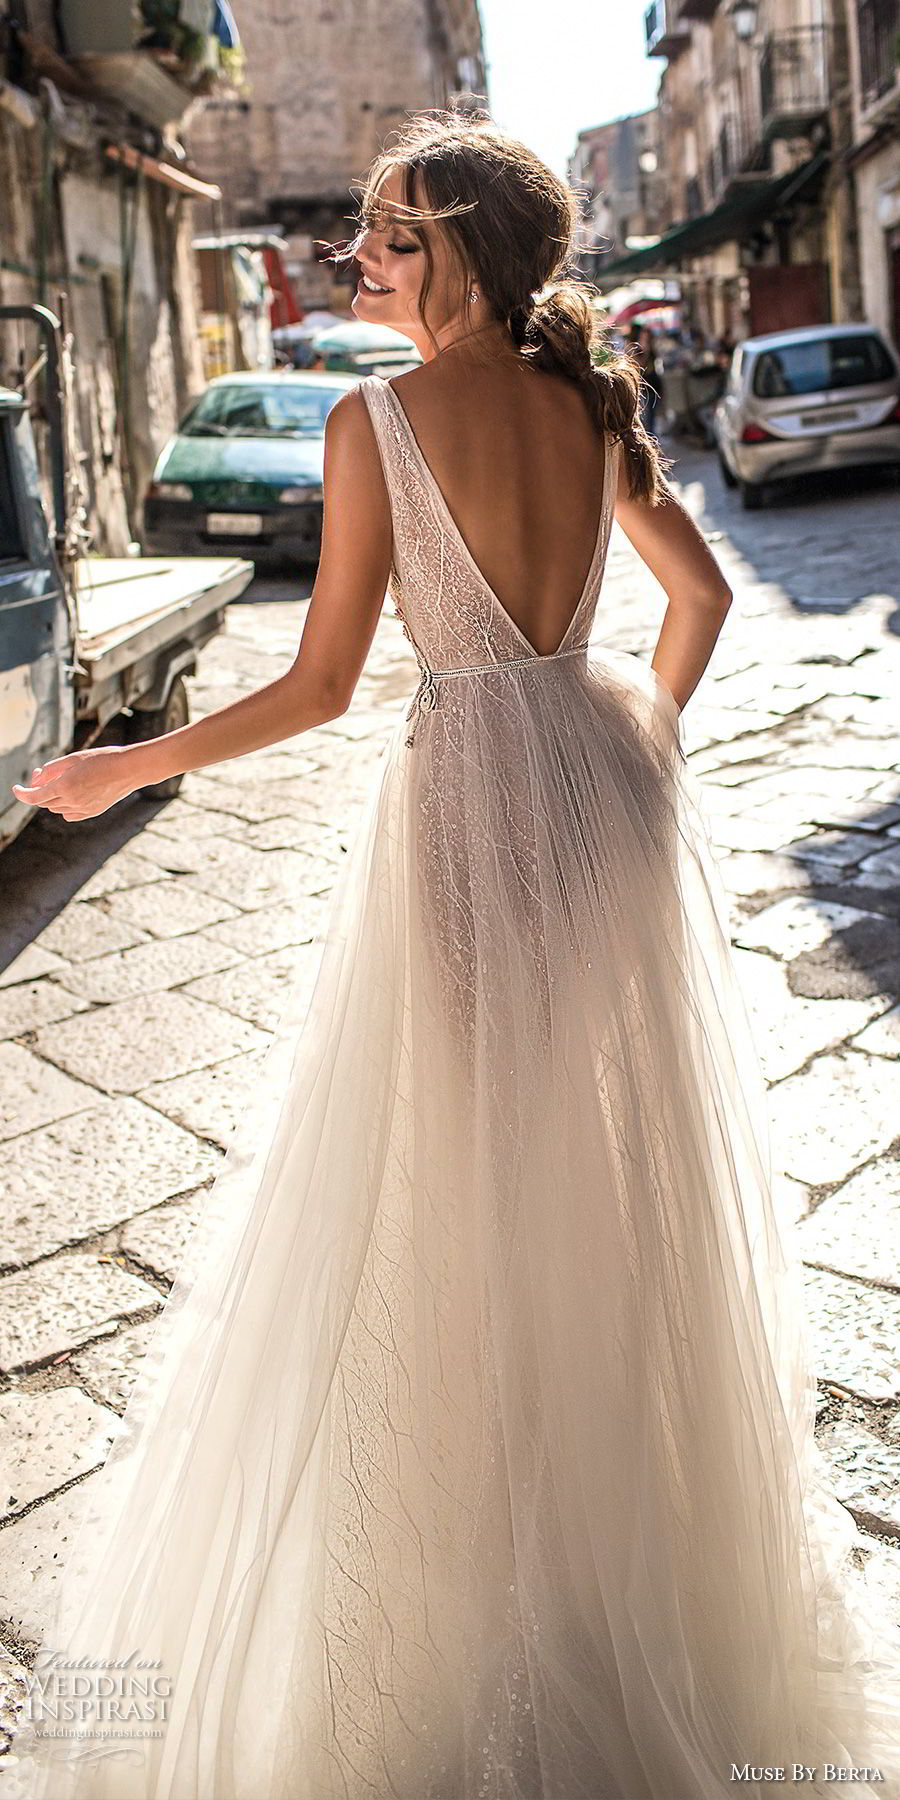 muse berta 2018 bridal sleeveless deep v neck lightly embellished bodice tulle skirt romantic soft a line wedding dress open v back medium train (4) bv